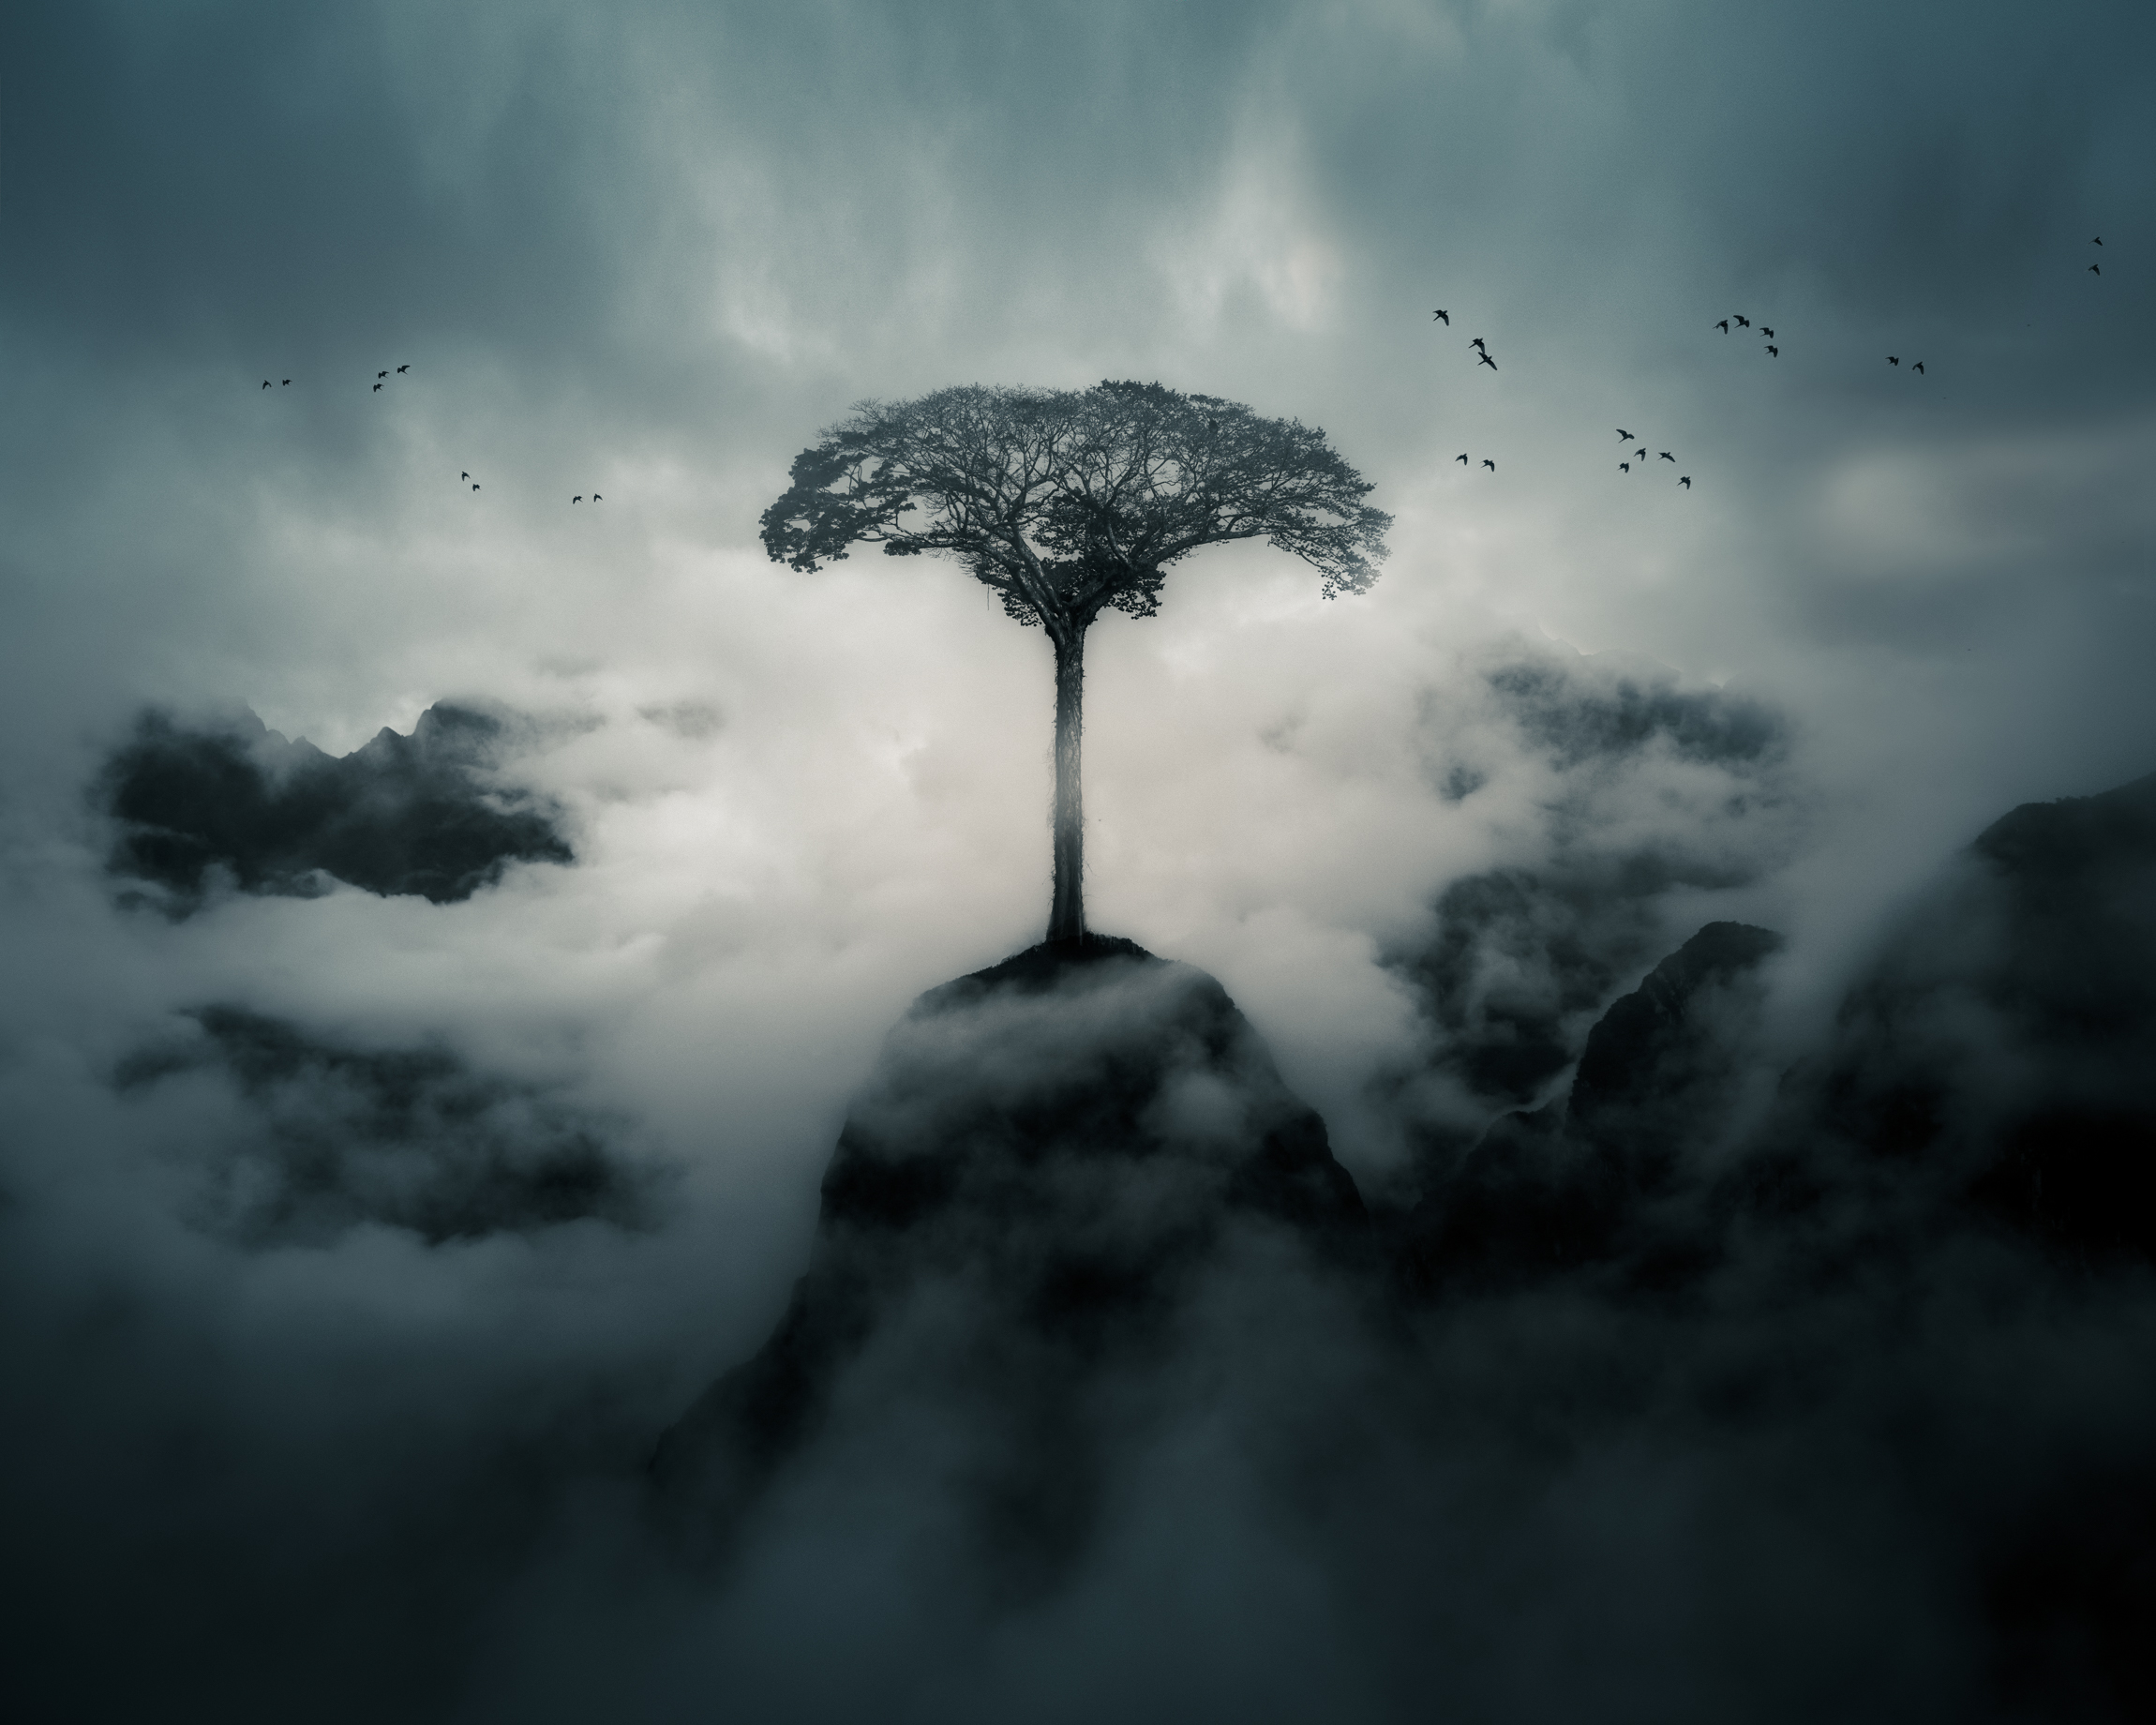 Creative Category - A composite image of Machu Picchu, a tree from the Amazon and some birds from regional Peru.